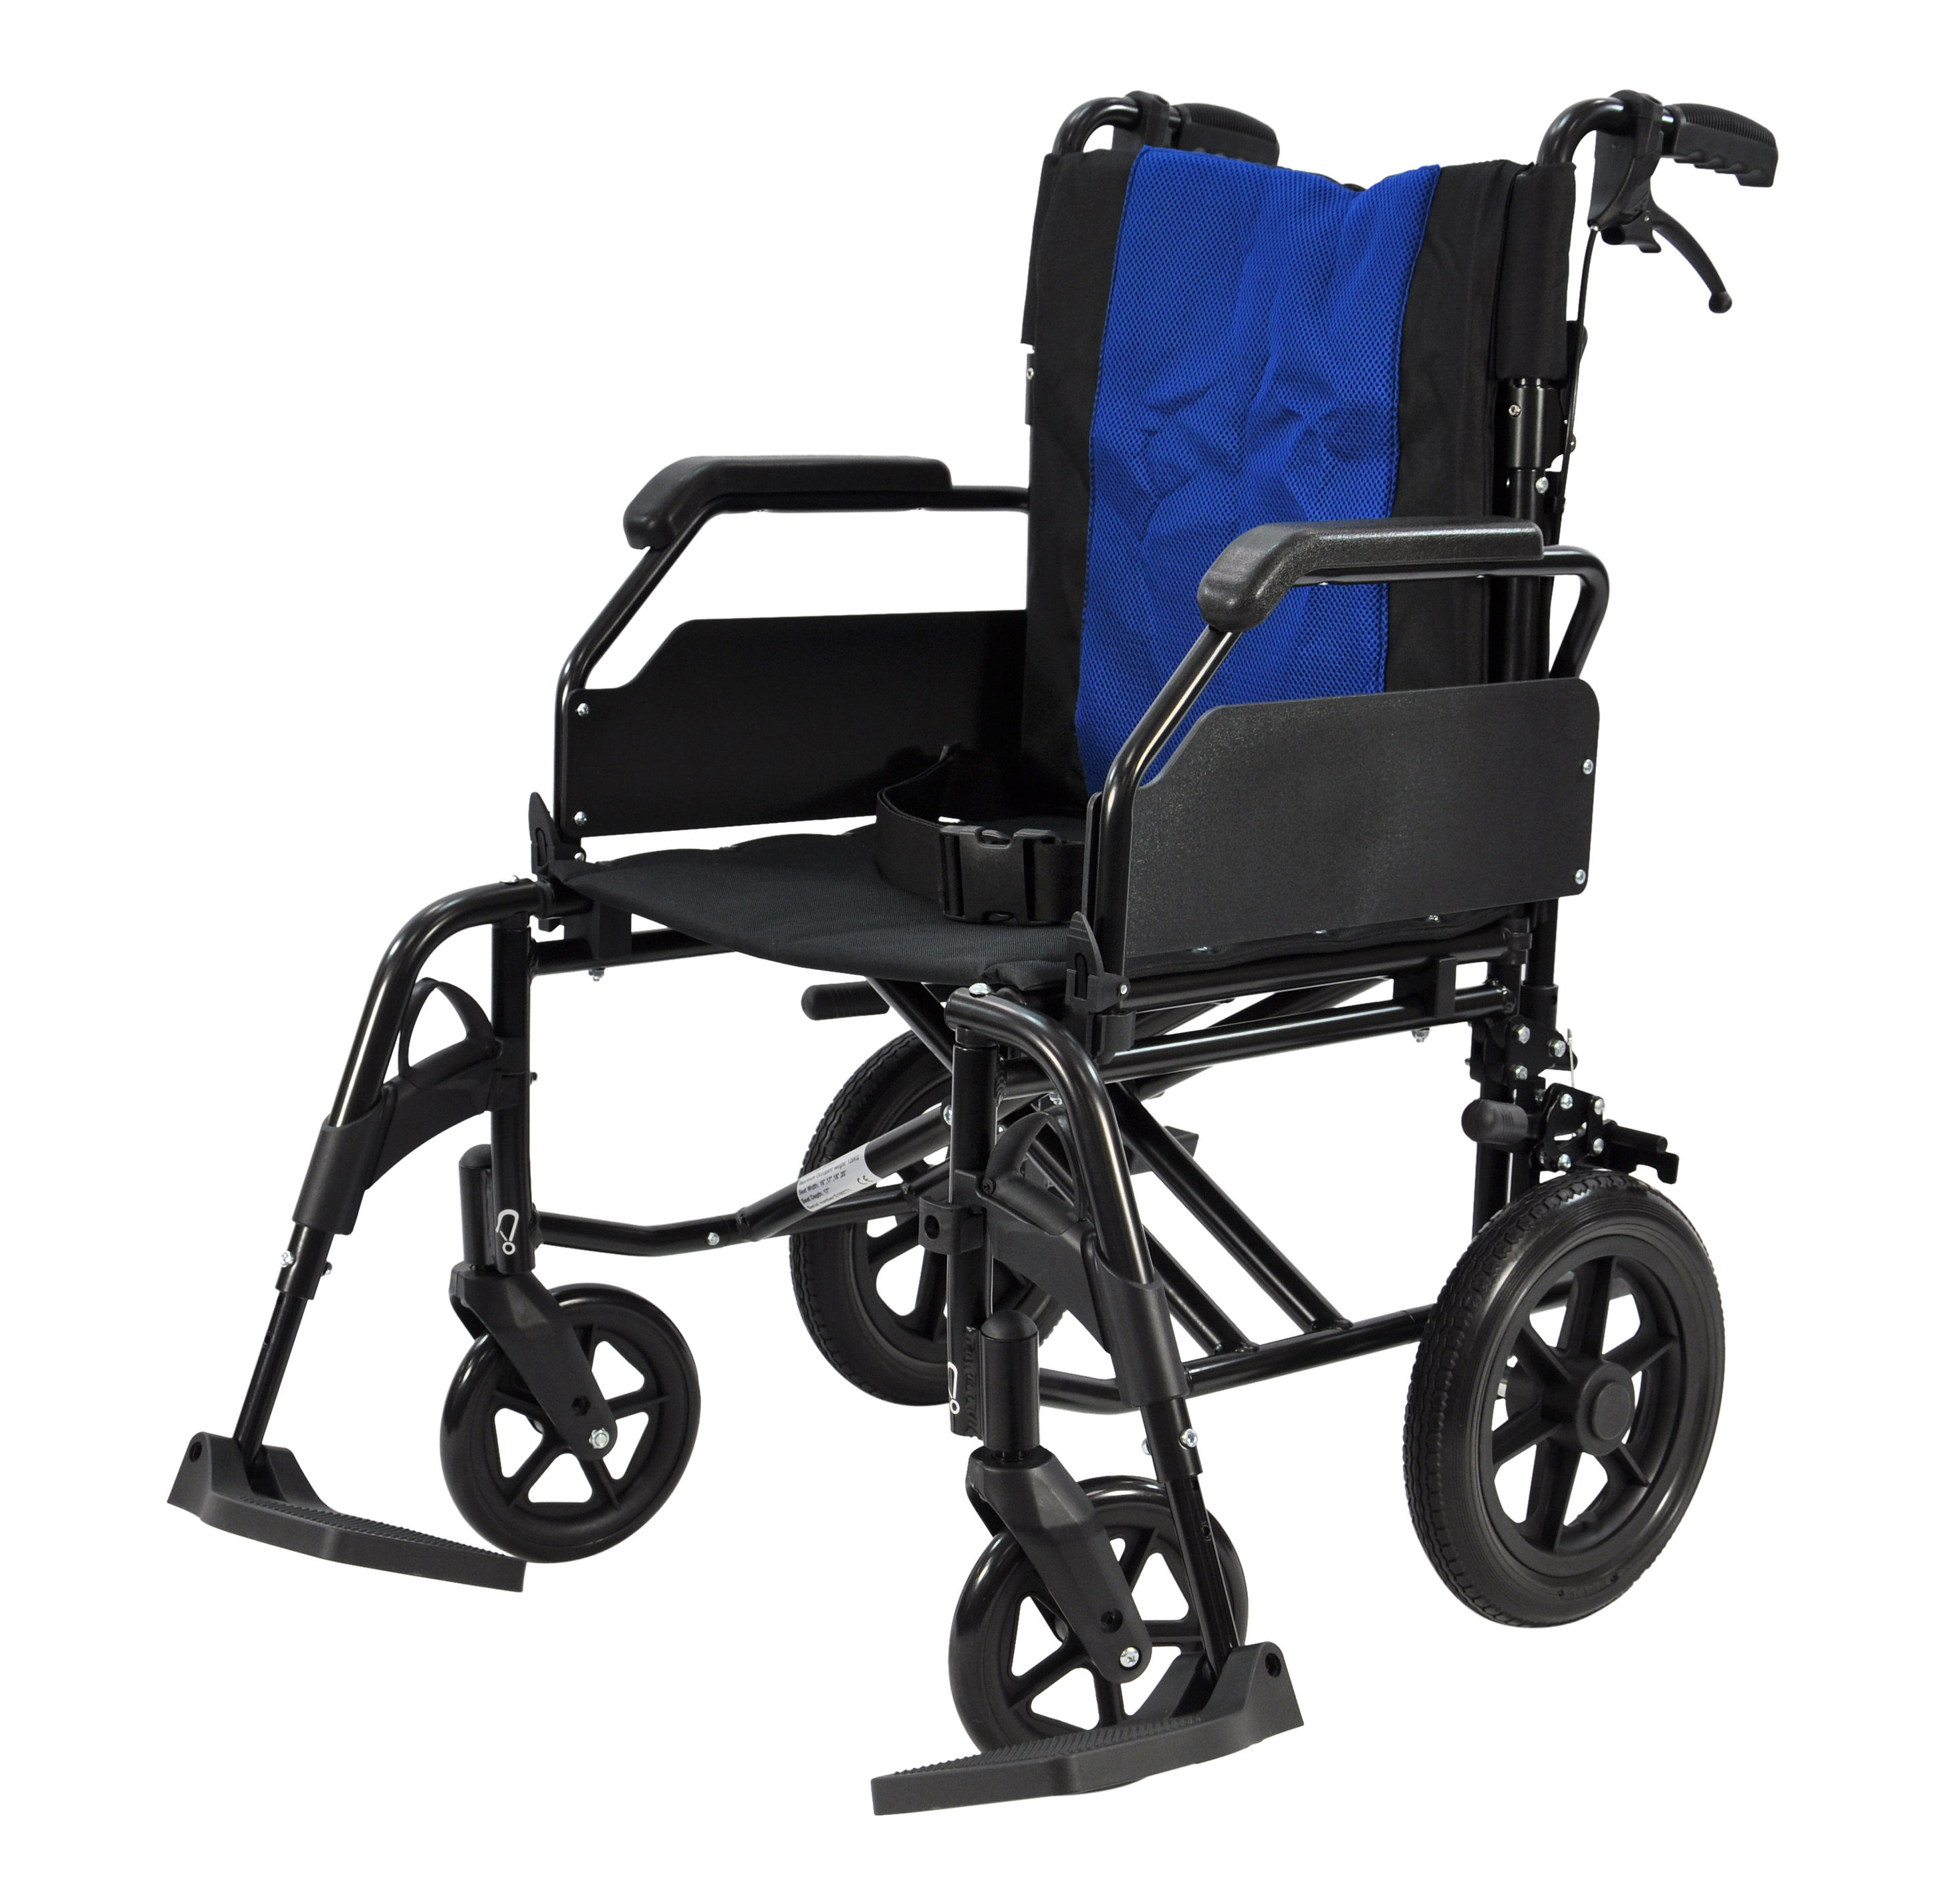 Greencare Easy 1 Attendant Quot Black Edition Quot Wheelchair 18